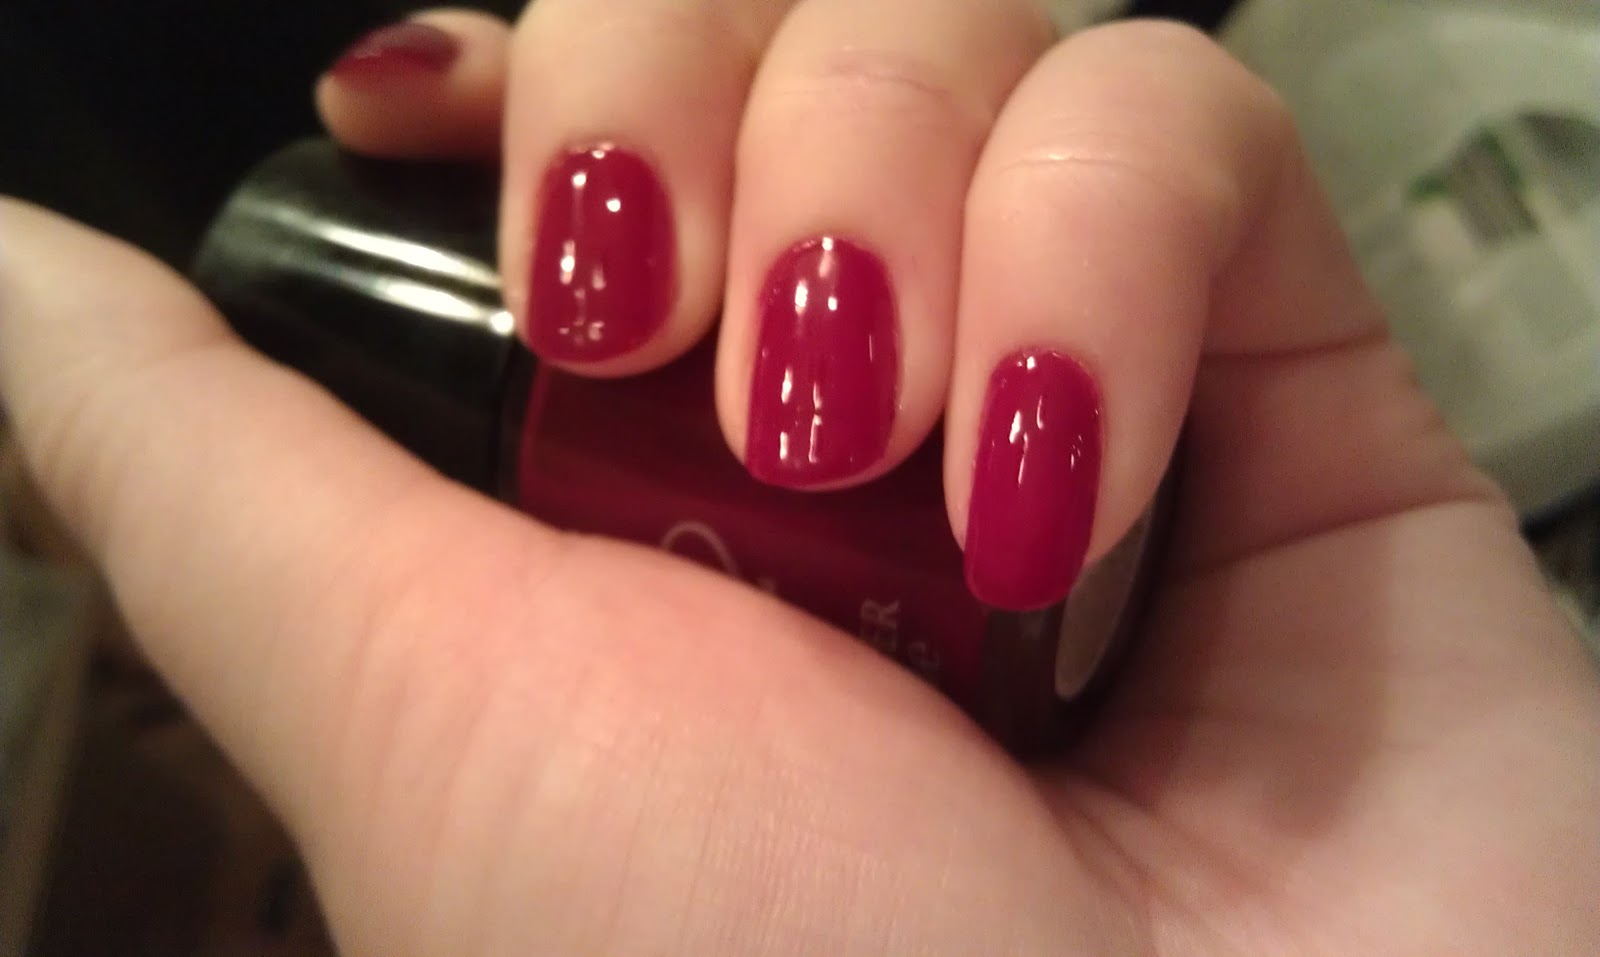 And Let Me Tell You Quench Definitely Delivers This Color Is Gorgeous To The Extreme Truly Best Non Effects Red Polish Ive Ever Seen